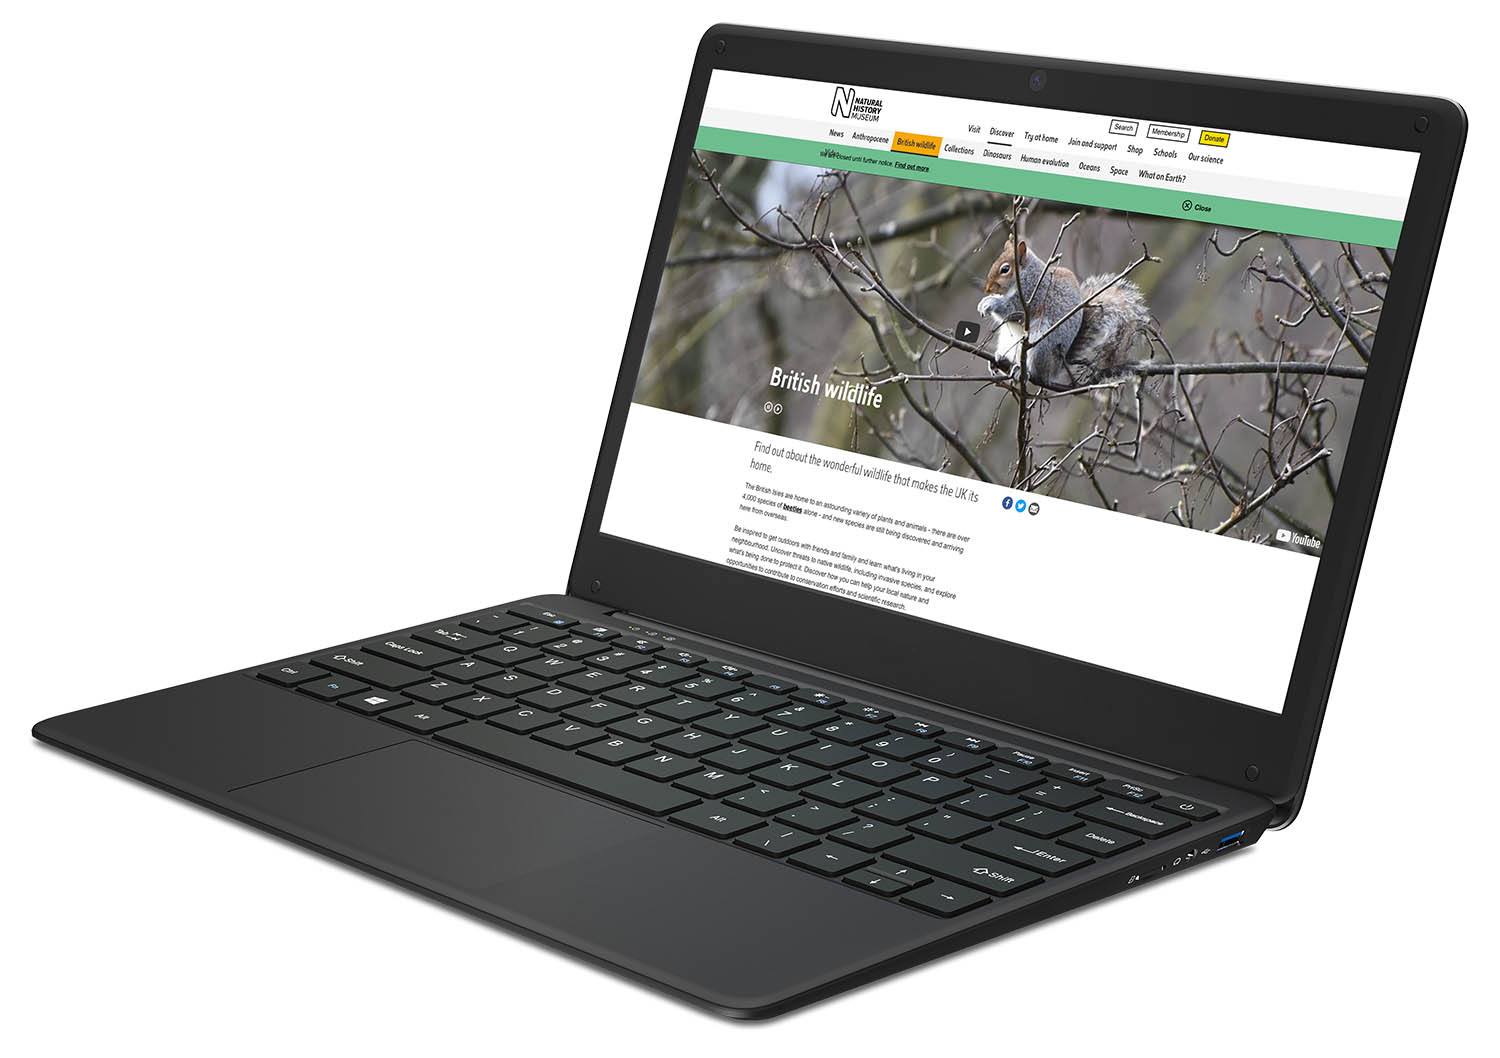 View of the GeoBook 2e laptop from the right side